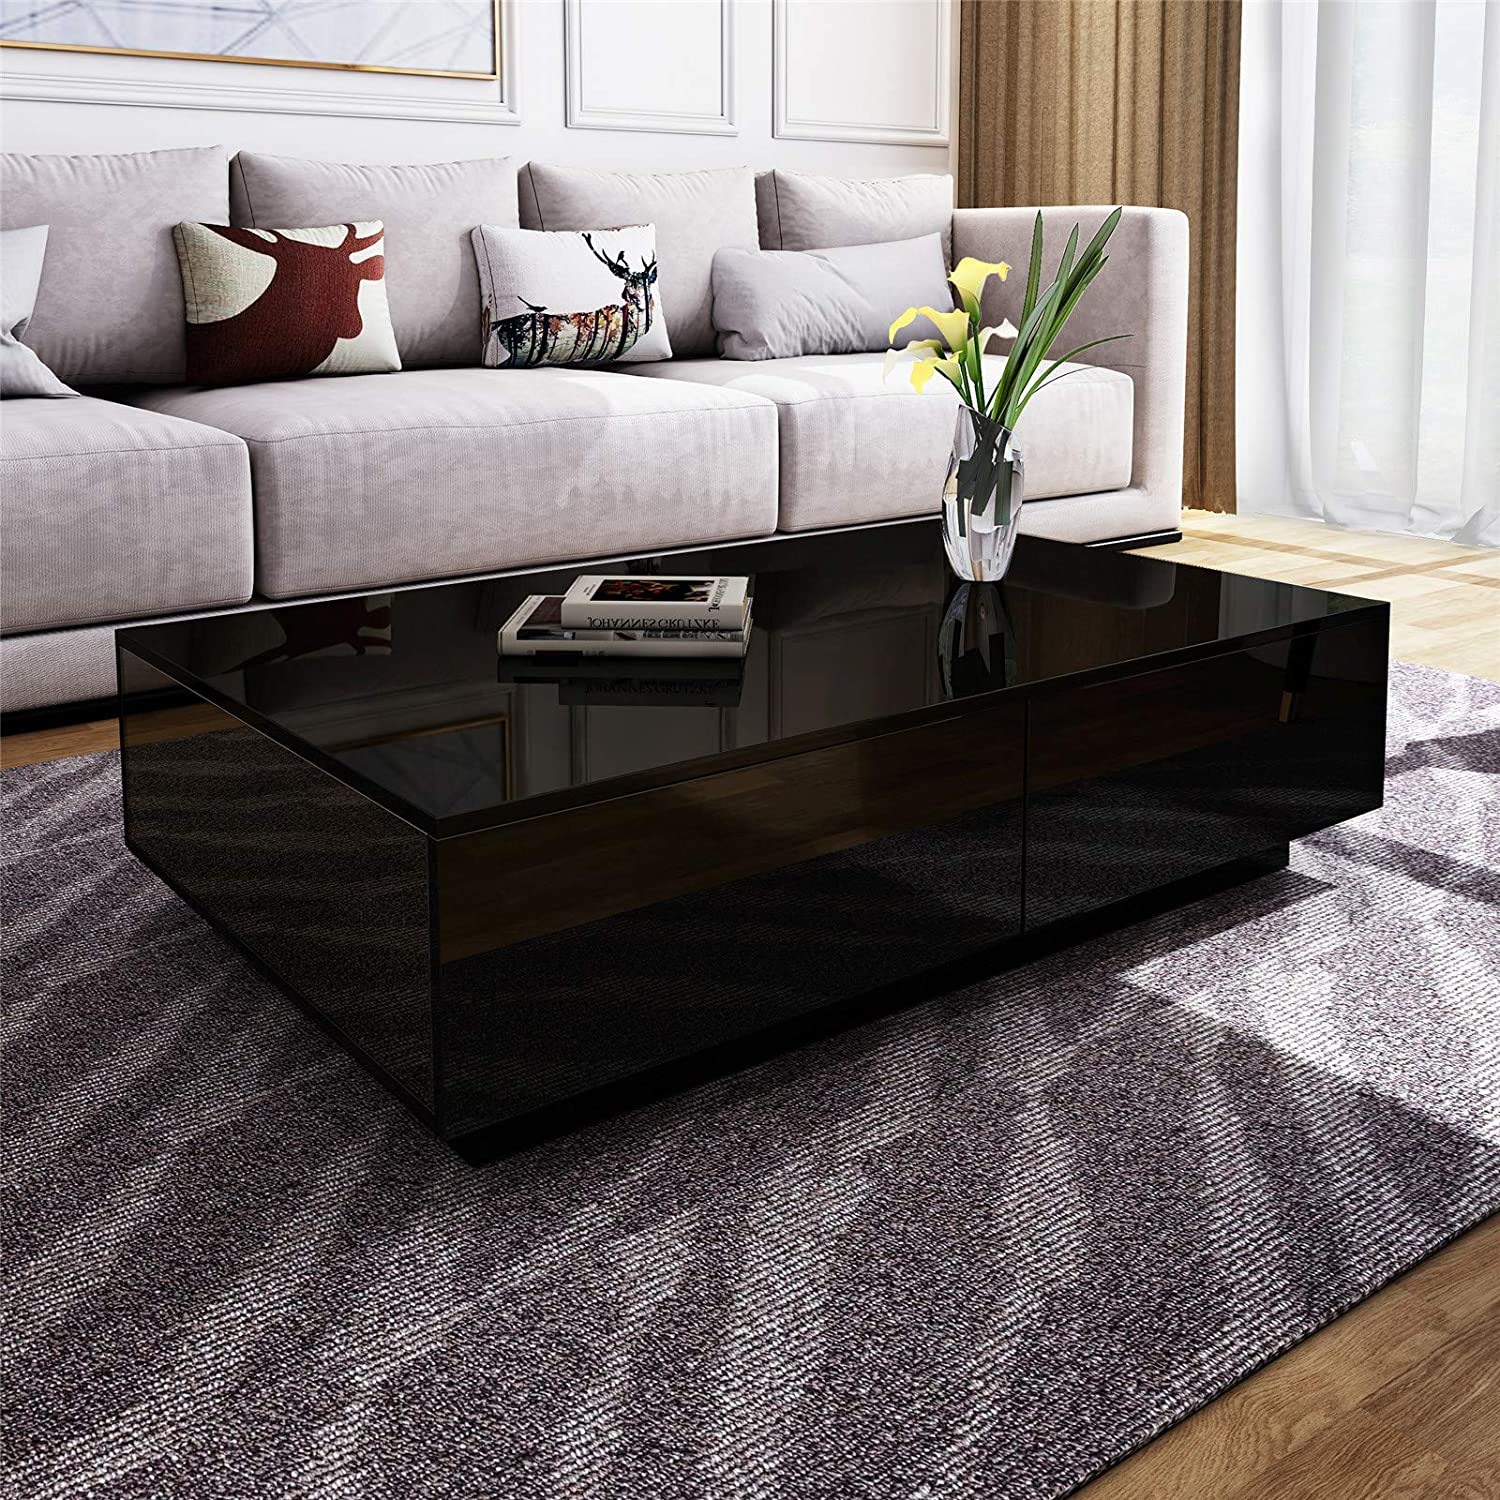 Pleasant Modern Rectangle Coffee Tea Table Black High Gloss Coffee Table With 4 Storage Drawers For Living Room Home Office Furniture Download Free Architecture Designs Scobabritishbridgeorg